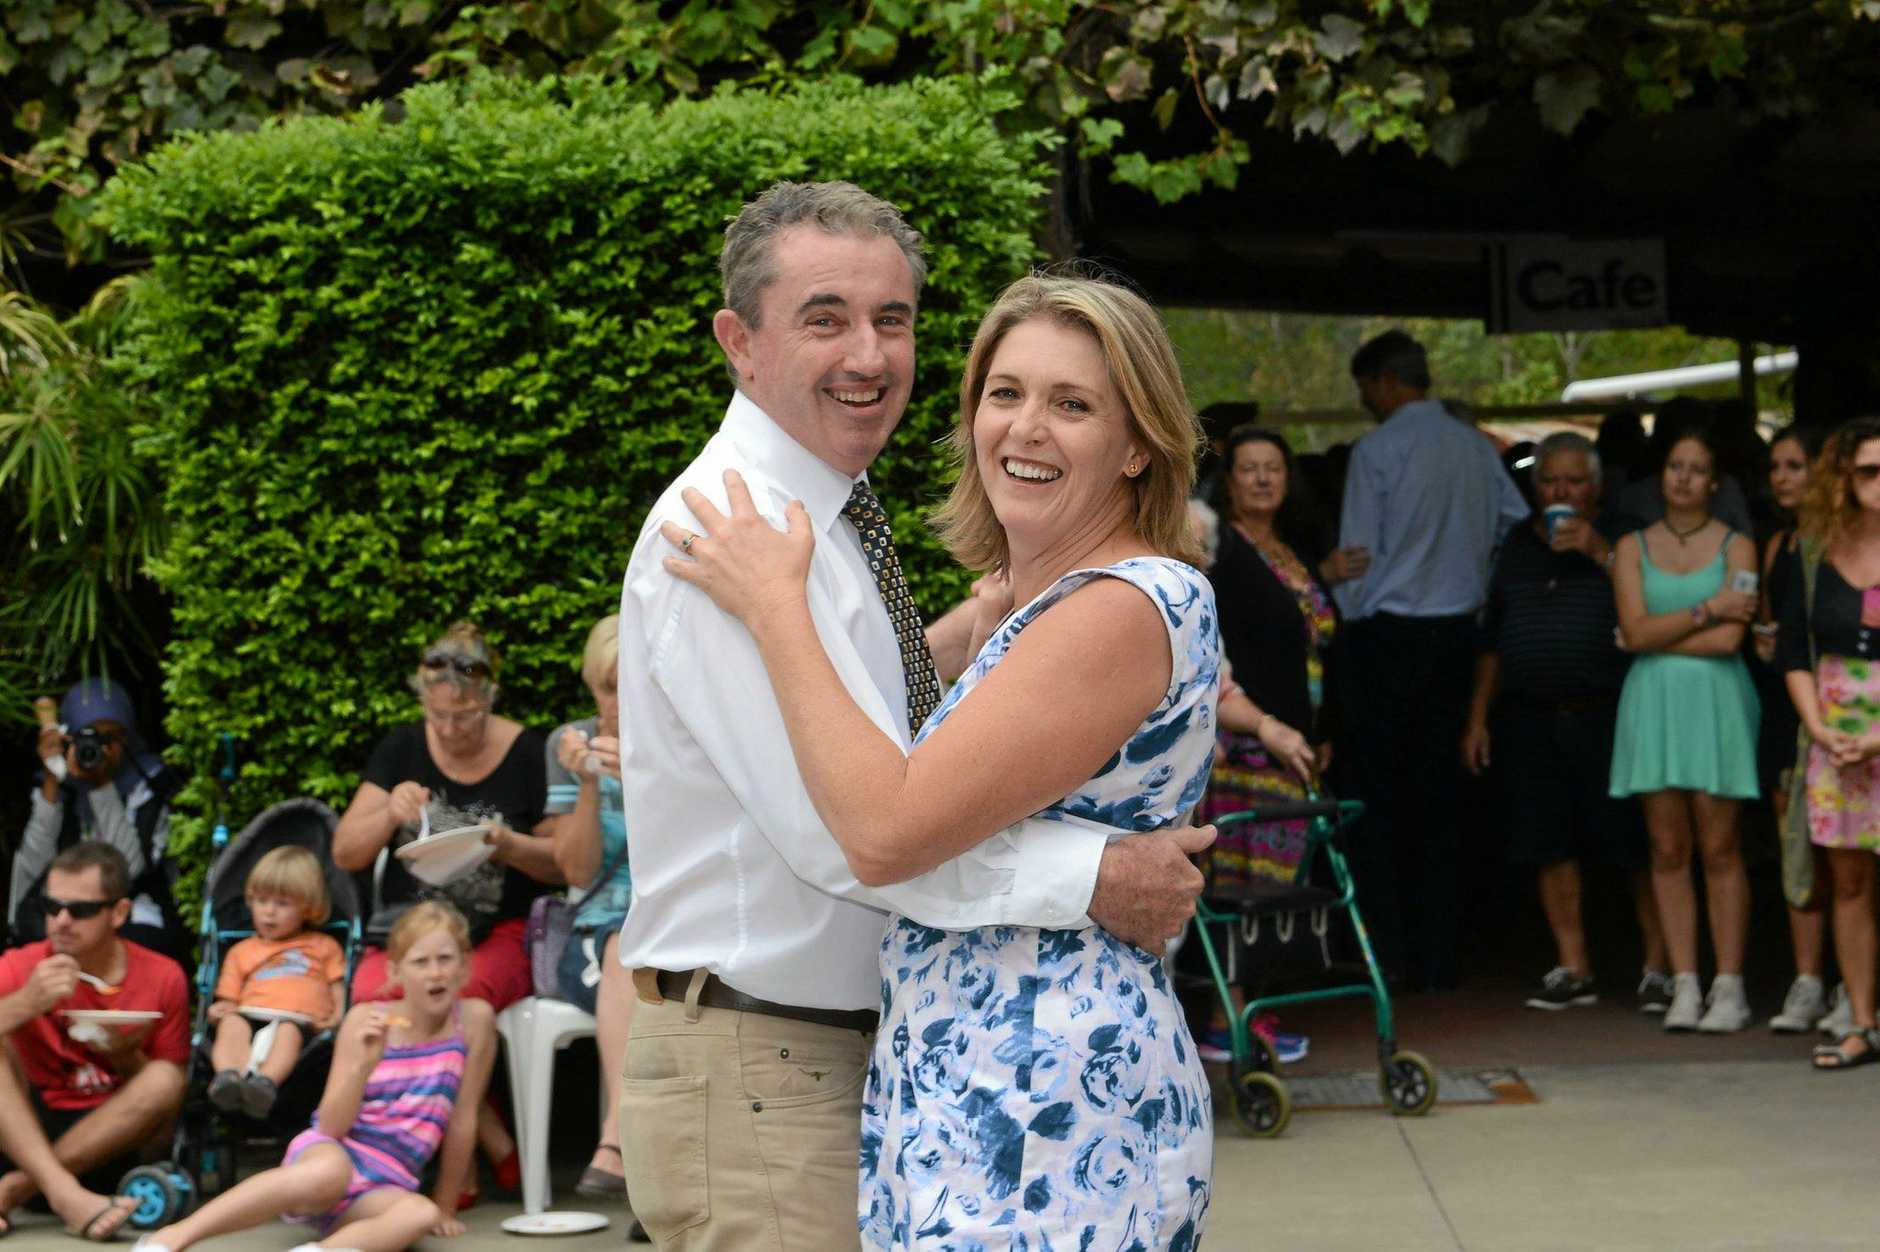 Kevin Hogan (Federal Member for Page) and his wife Karen Hogan  at the Carnevale Italiano in New Italy Photo Mireille Merlet-Shaw / The Northern Star